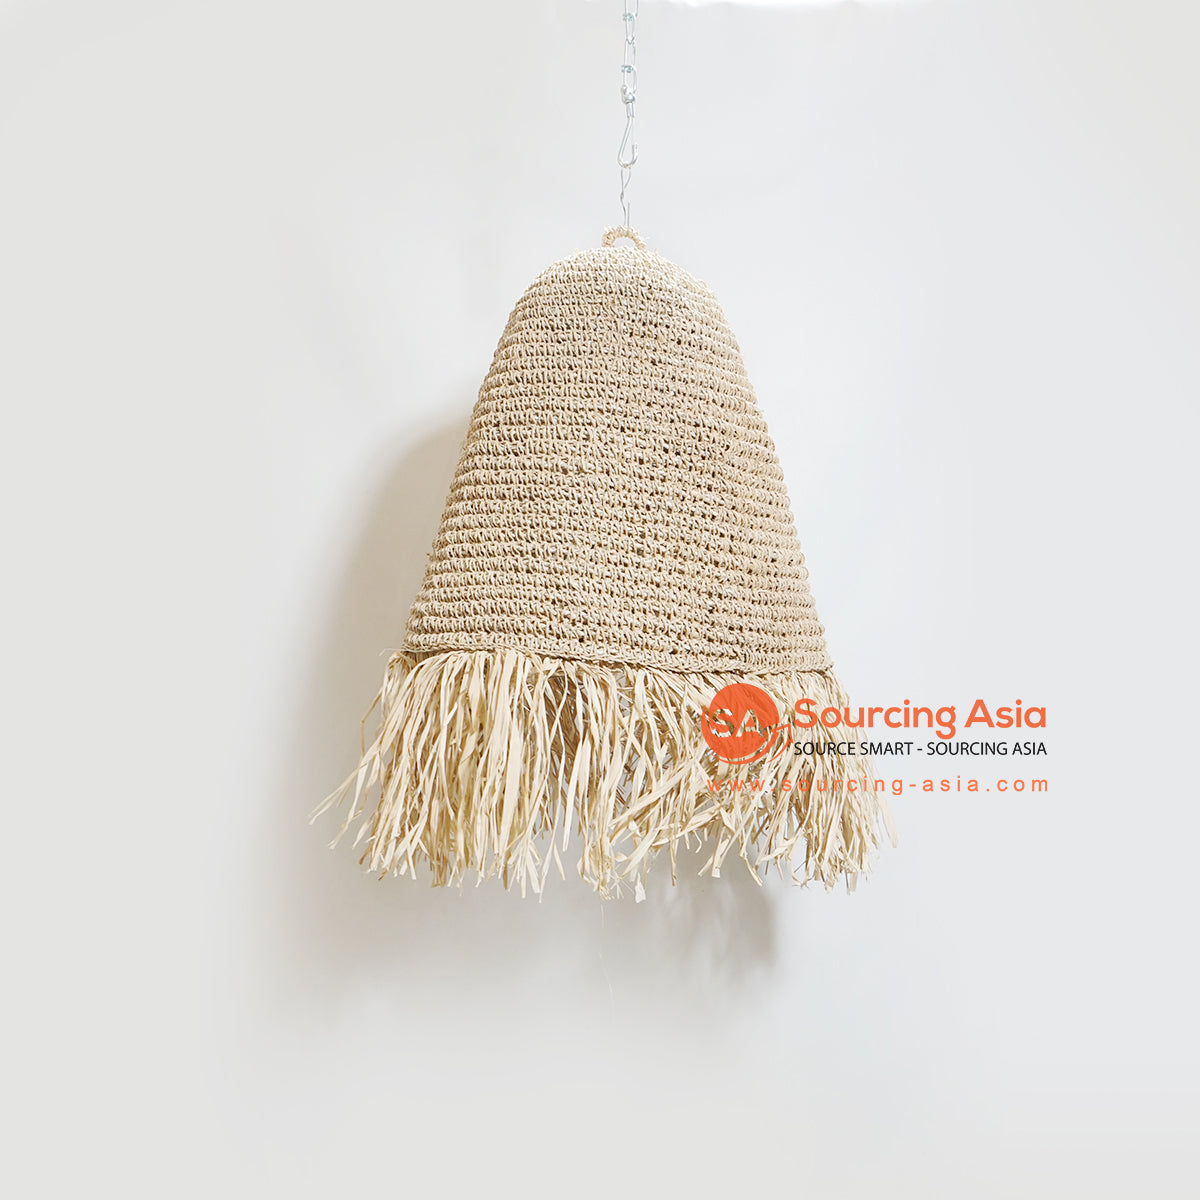 HBSC191-2 SEA GRASS HANGING LAMP